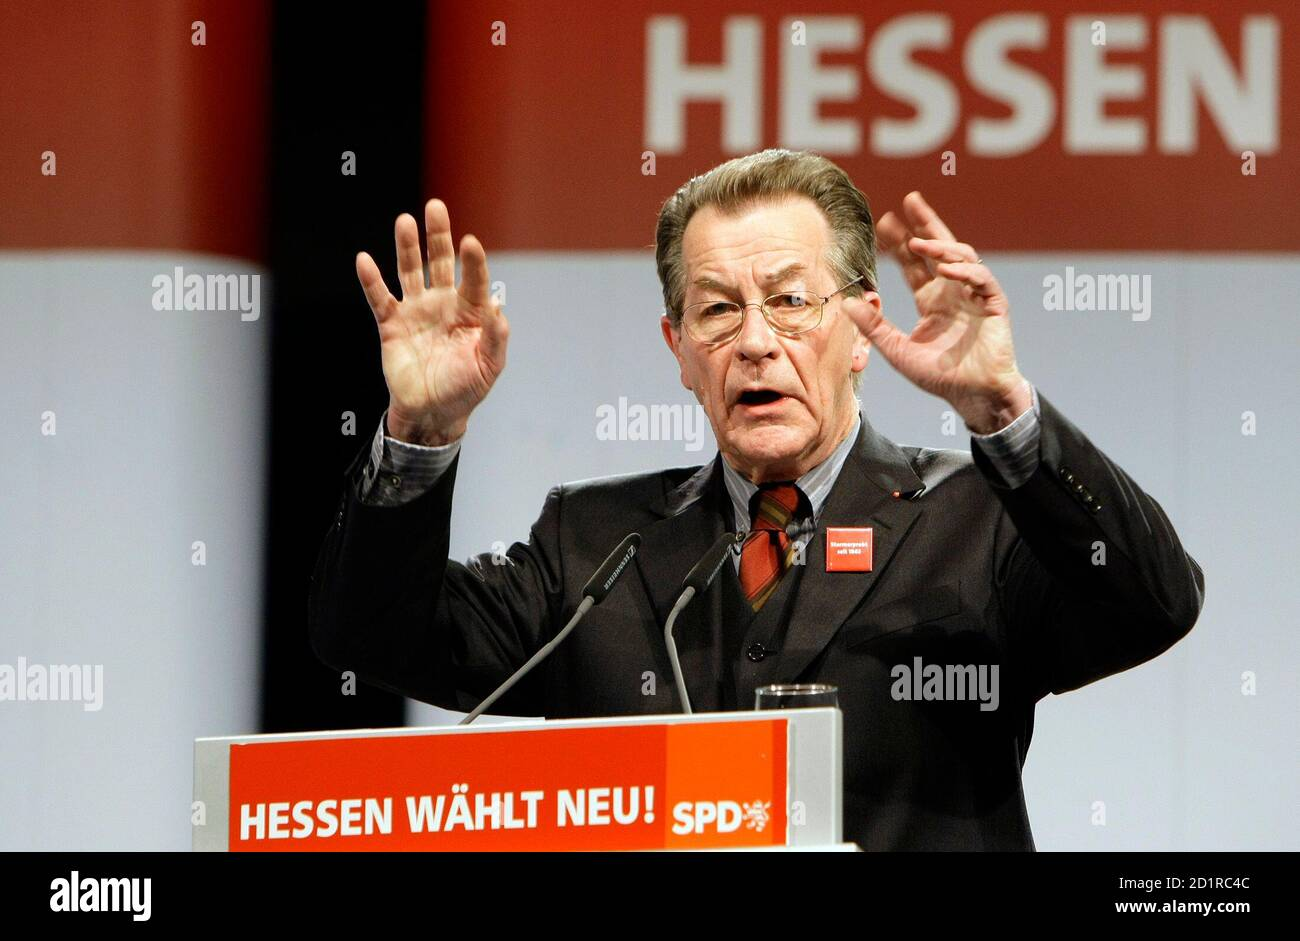 Franz Muentefering, leader of Germany's Social Democratic Party SPD, delivers a speech during an extraordinary party convention in Alsfeld, December 13, 2008.     REUTERS/Thomas Bohlen   (GERMANY) Foto Stock